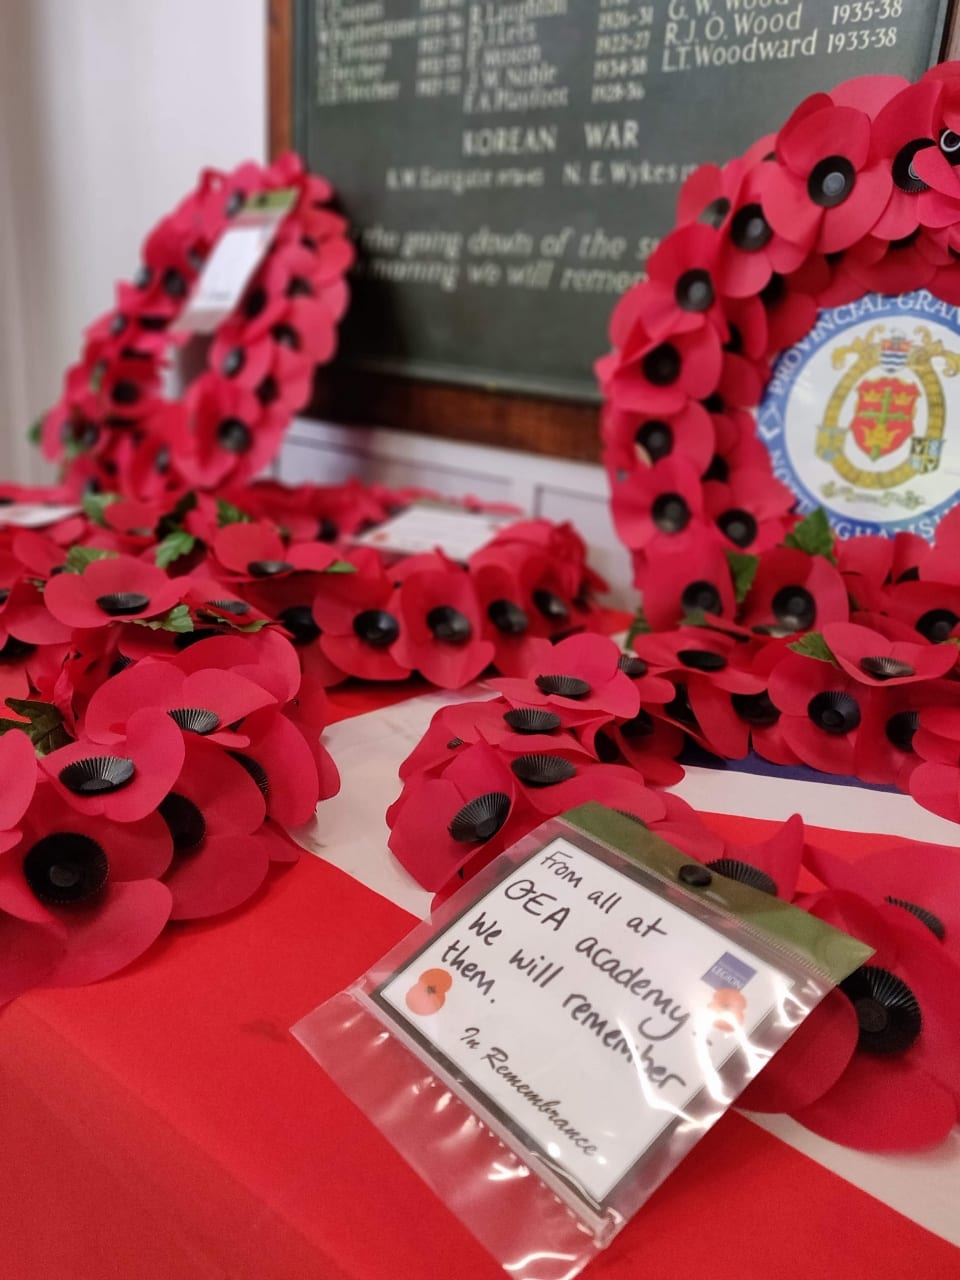 Academy gather for 2019 Remembrance service